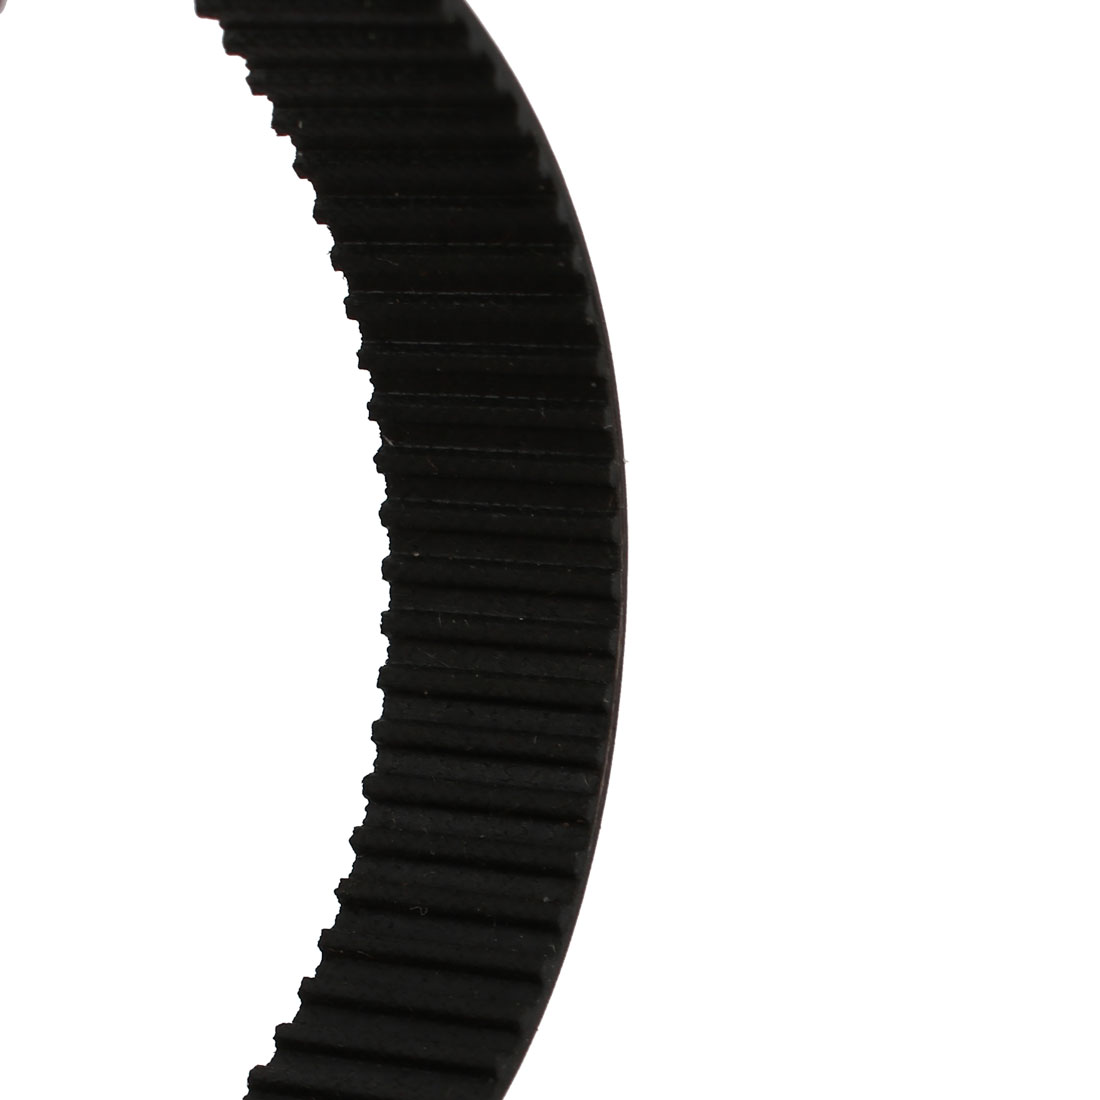 Unique Bargains 70 Teeth 9.8mm Width 149mm Perimeter Synchronous Closed Loop Rubber Timing Belt - image 1 of 2